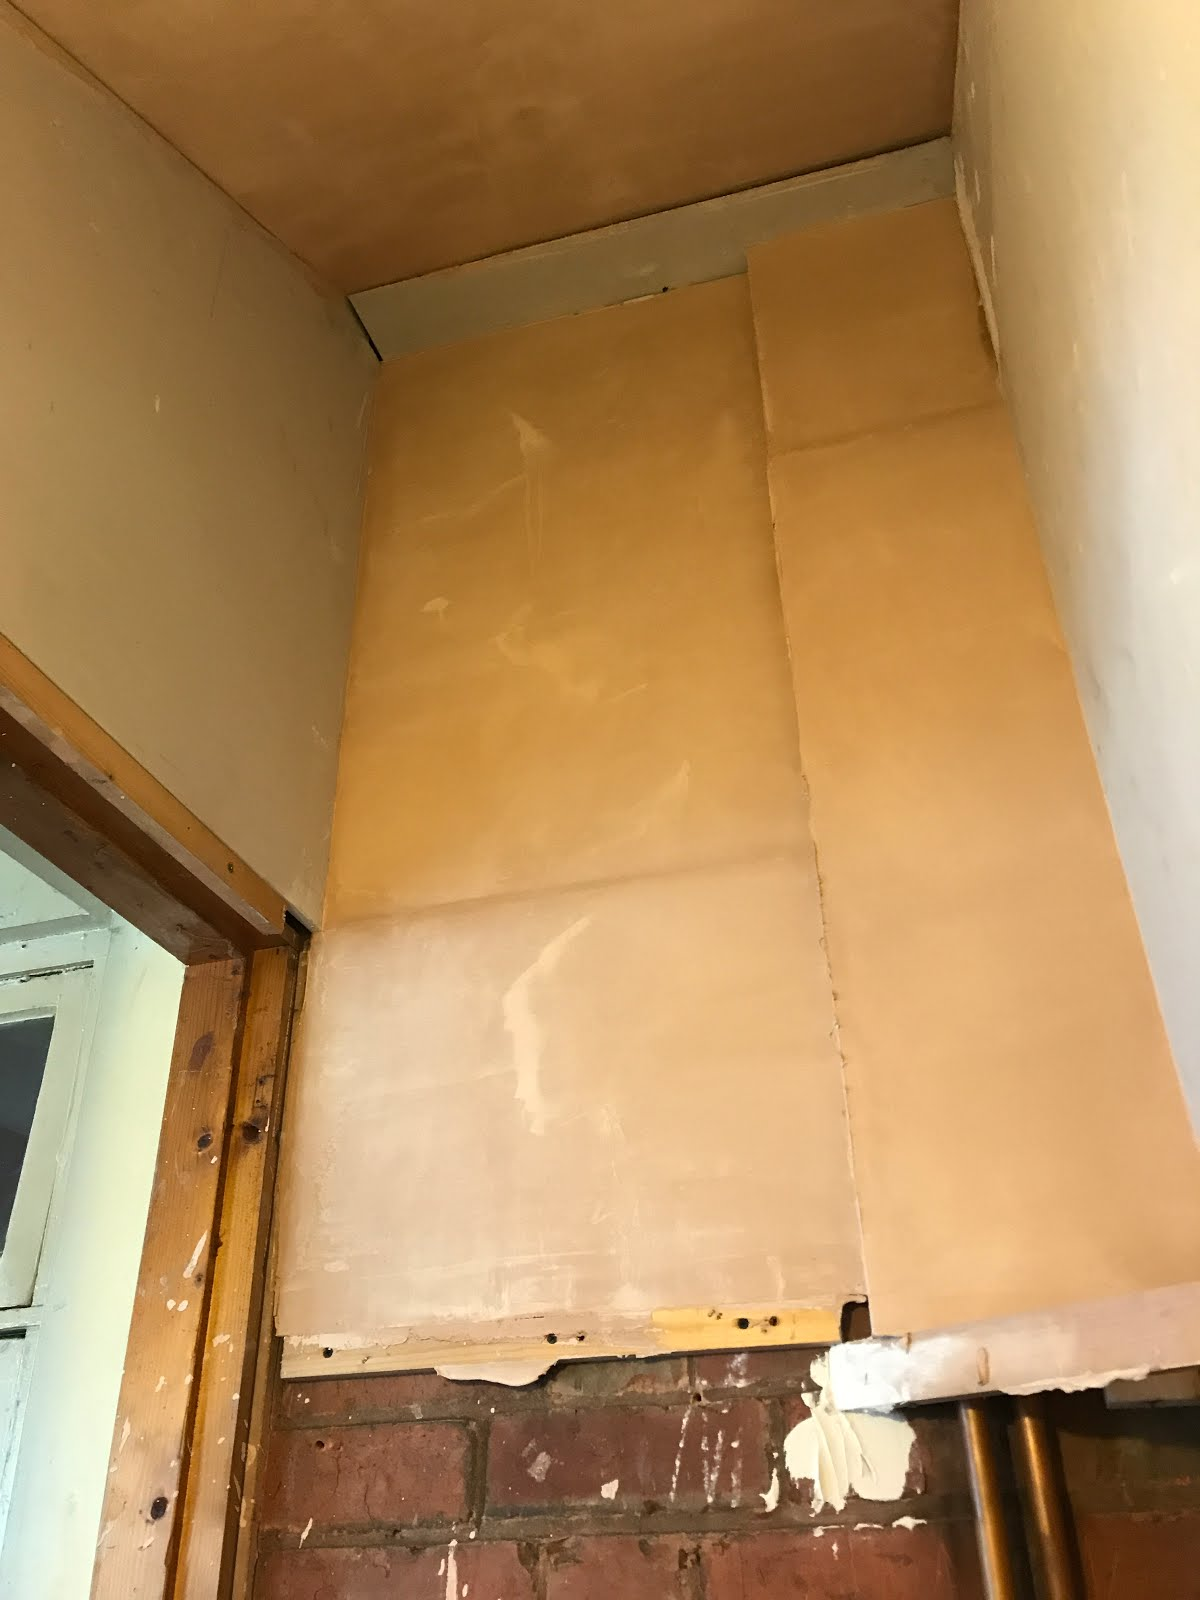 Plastering in a cupboard space